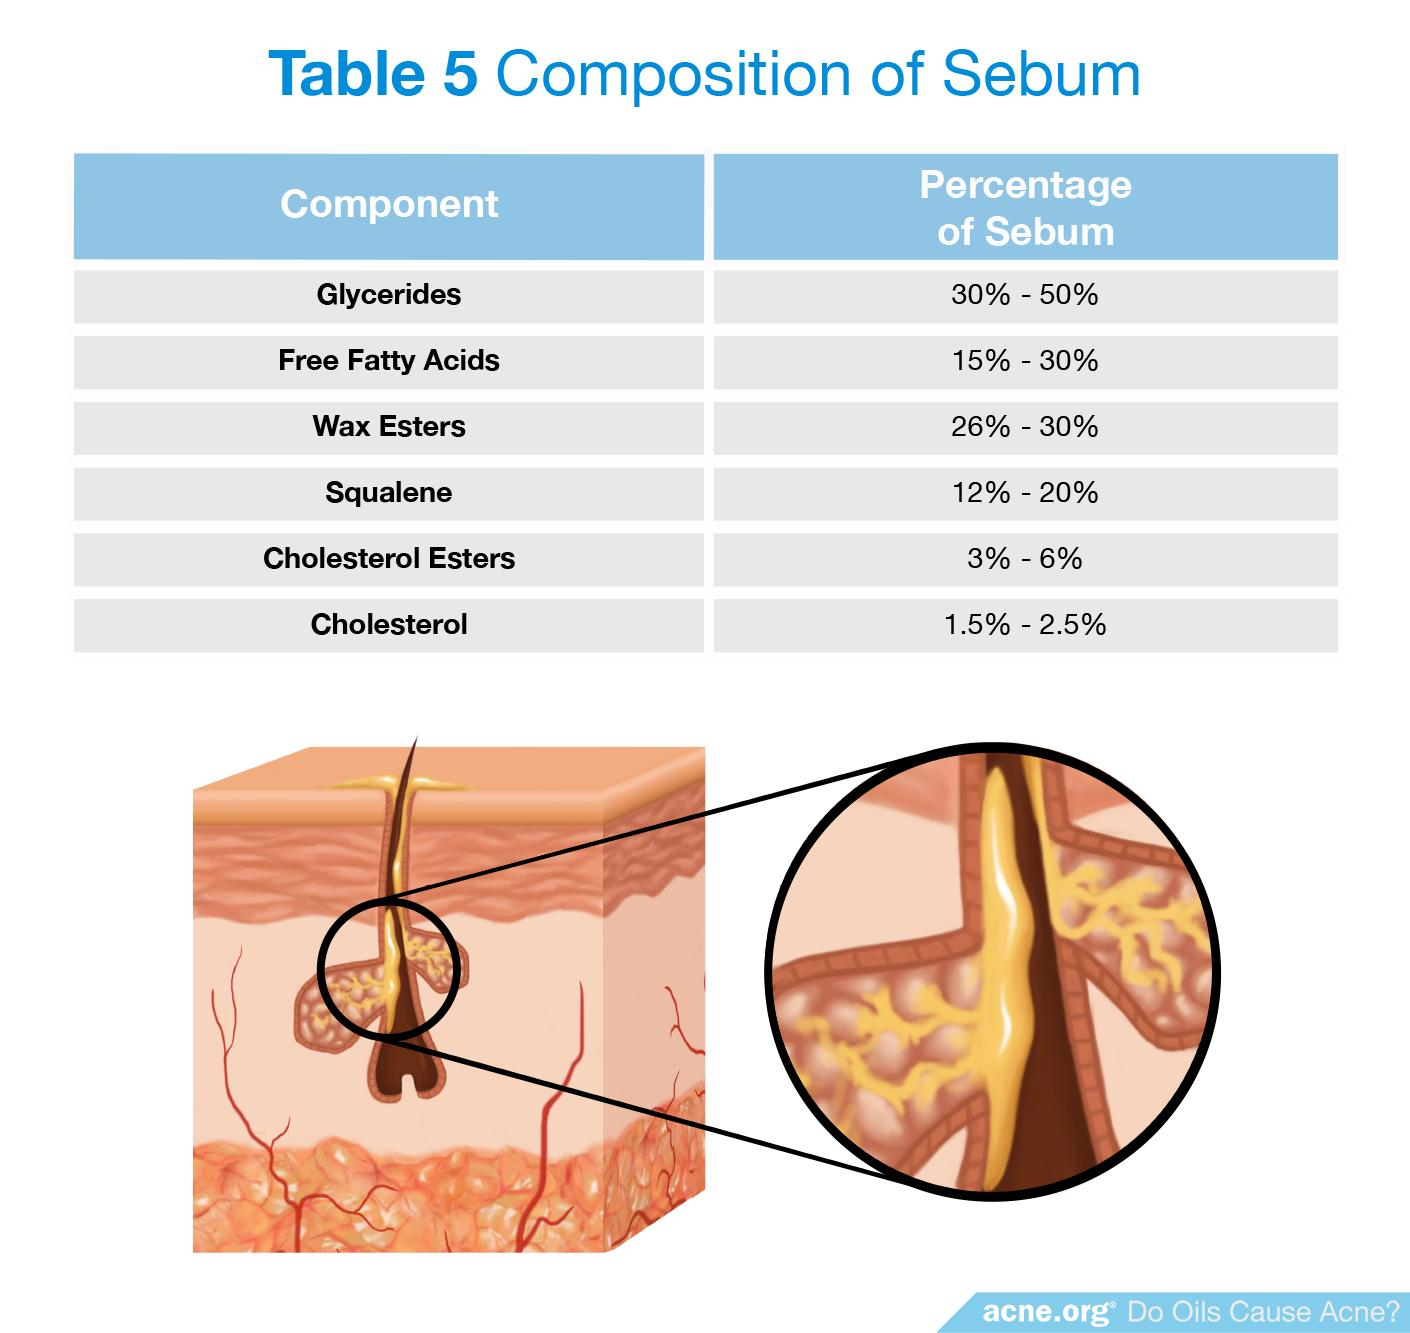 Composition of Sebum